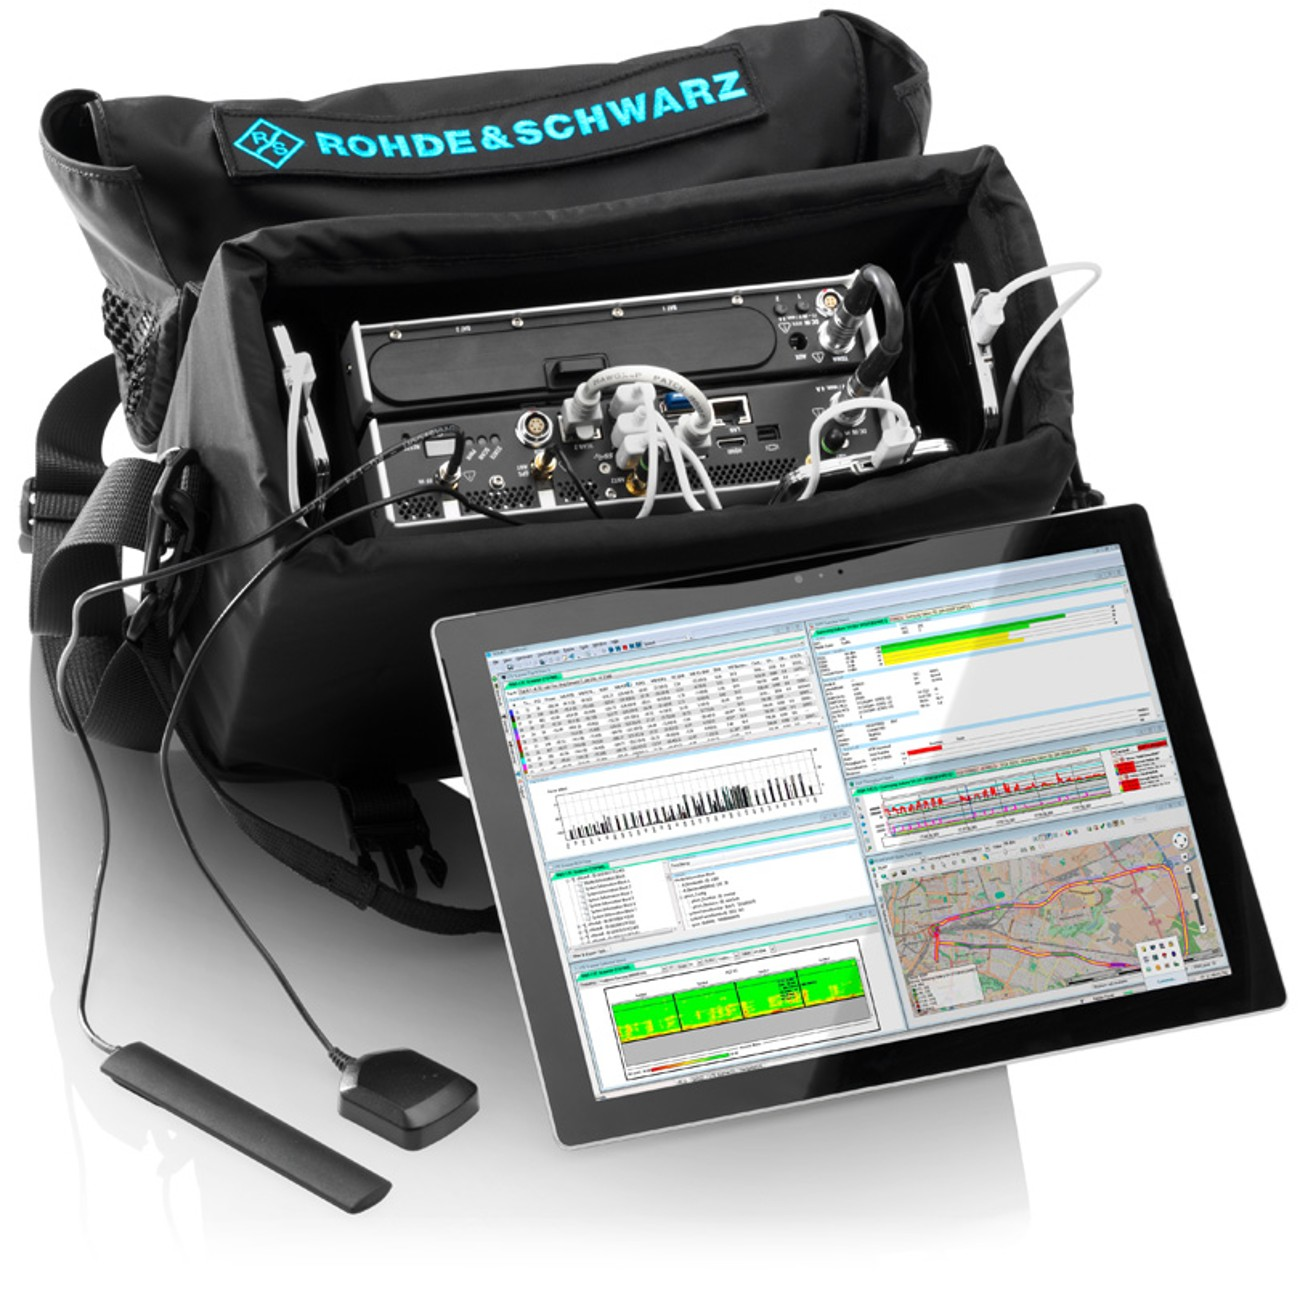 The portable spectrum cearance solution: the R&S®TSMA autonomous mobile network scanner and the R&S®ROMES4 drive/walk test software